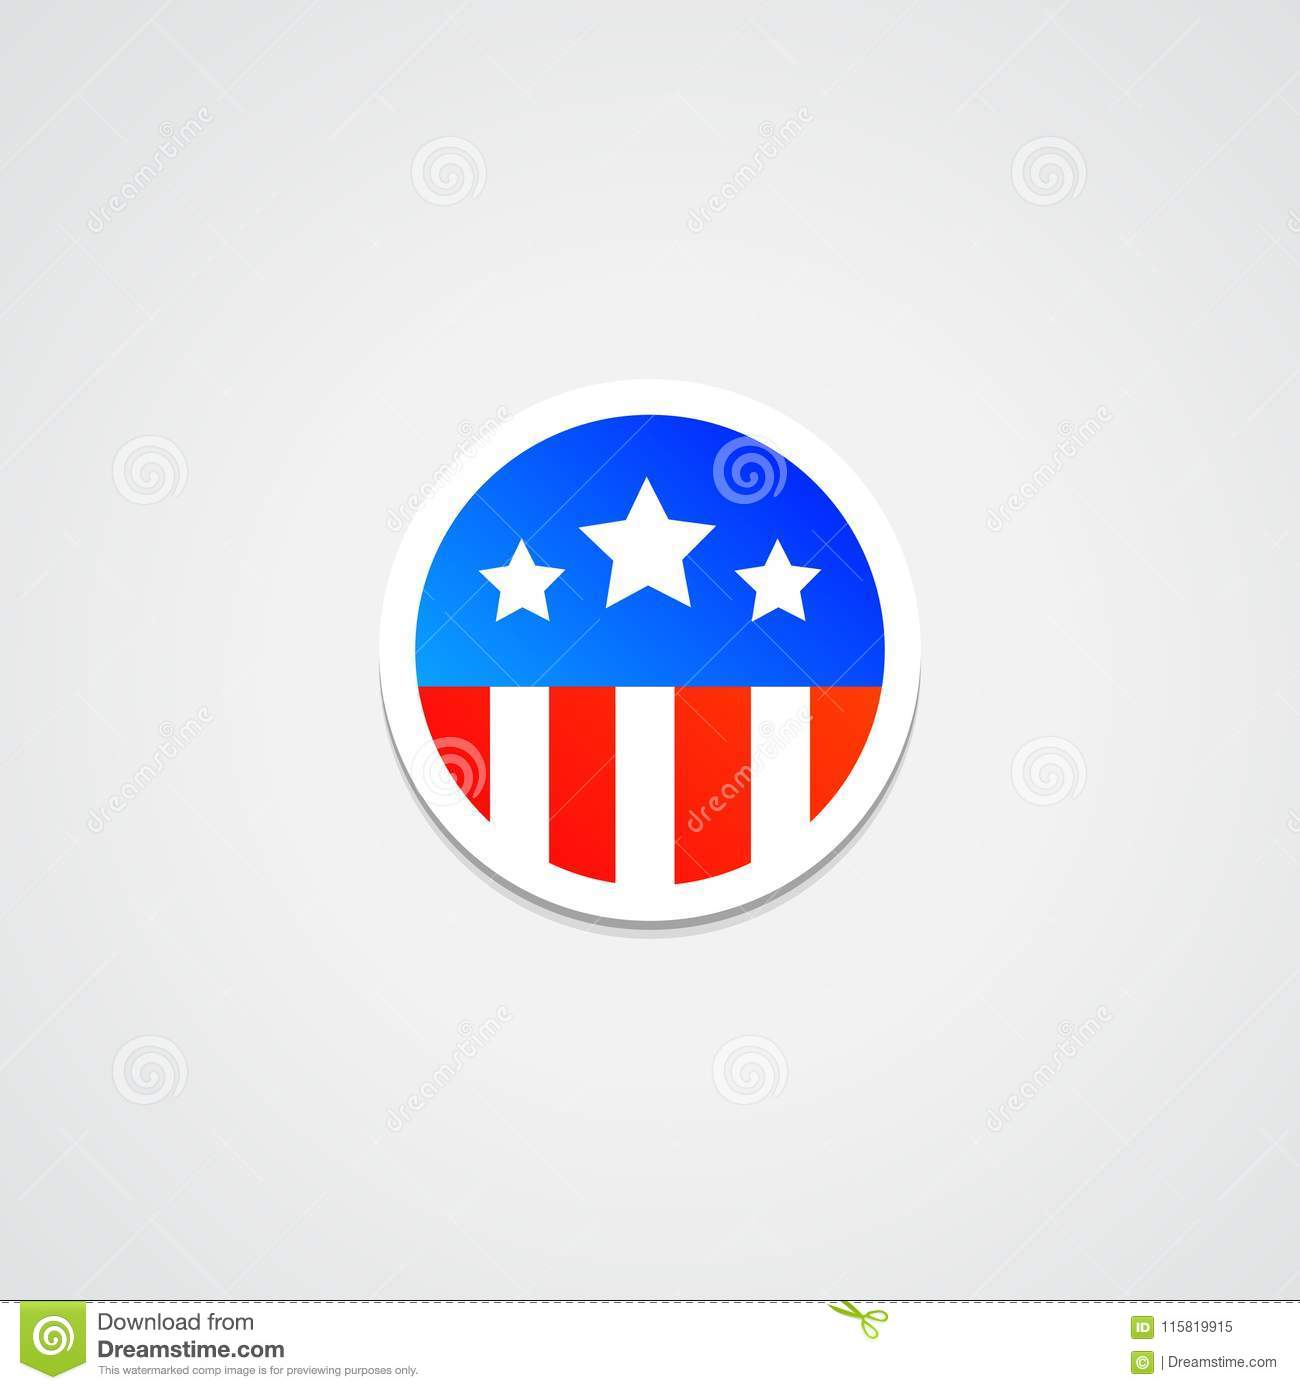 865b037aa52 Digital Illustration of American Flag Sticker. More similar stock  illustrations